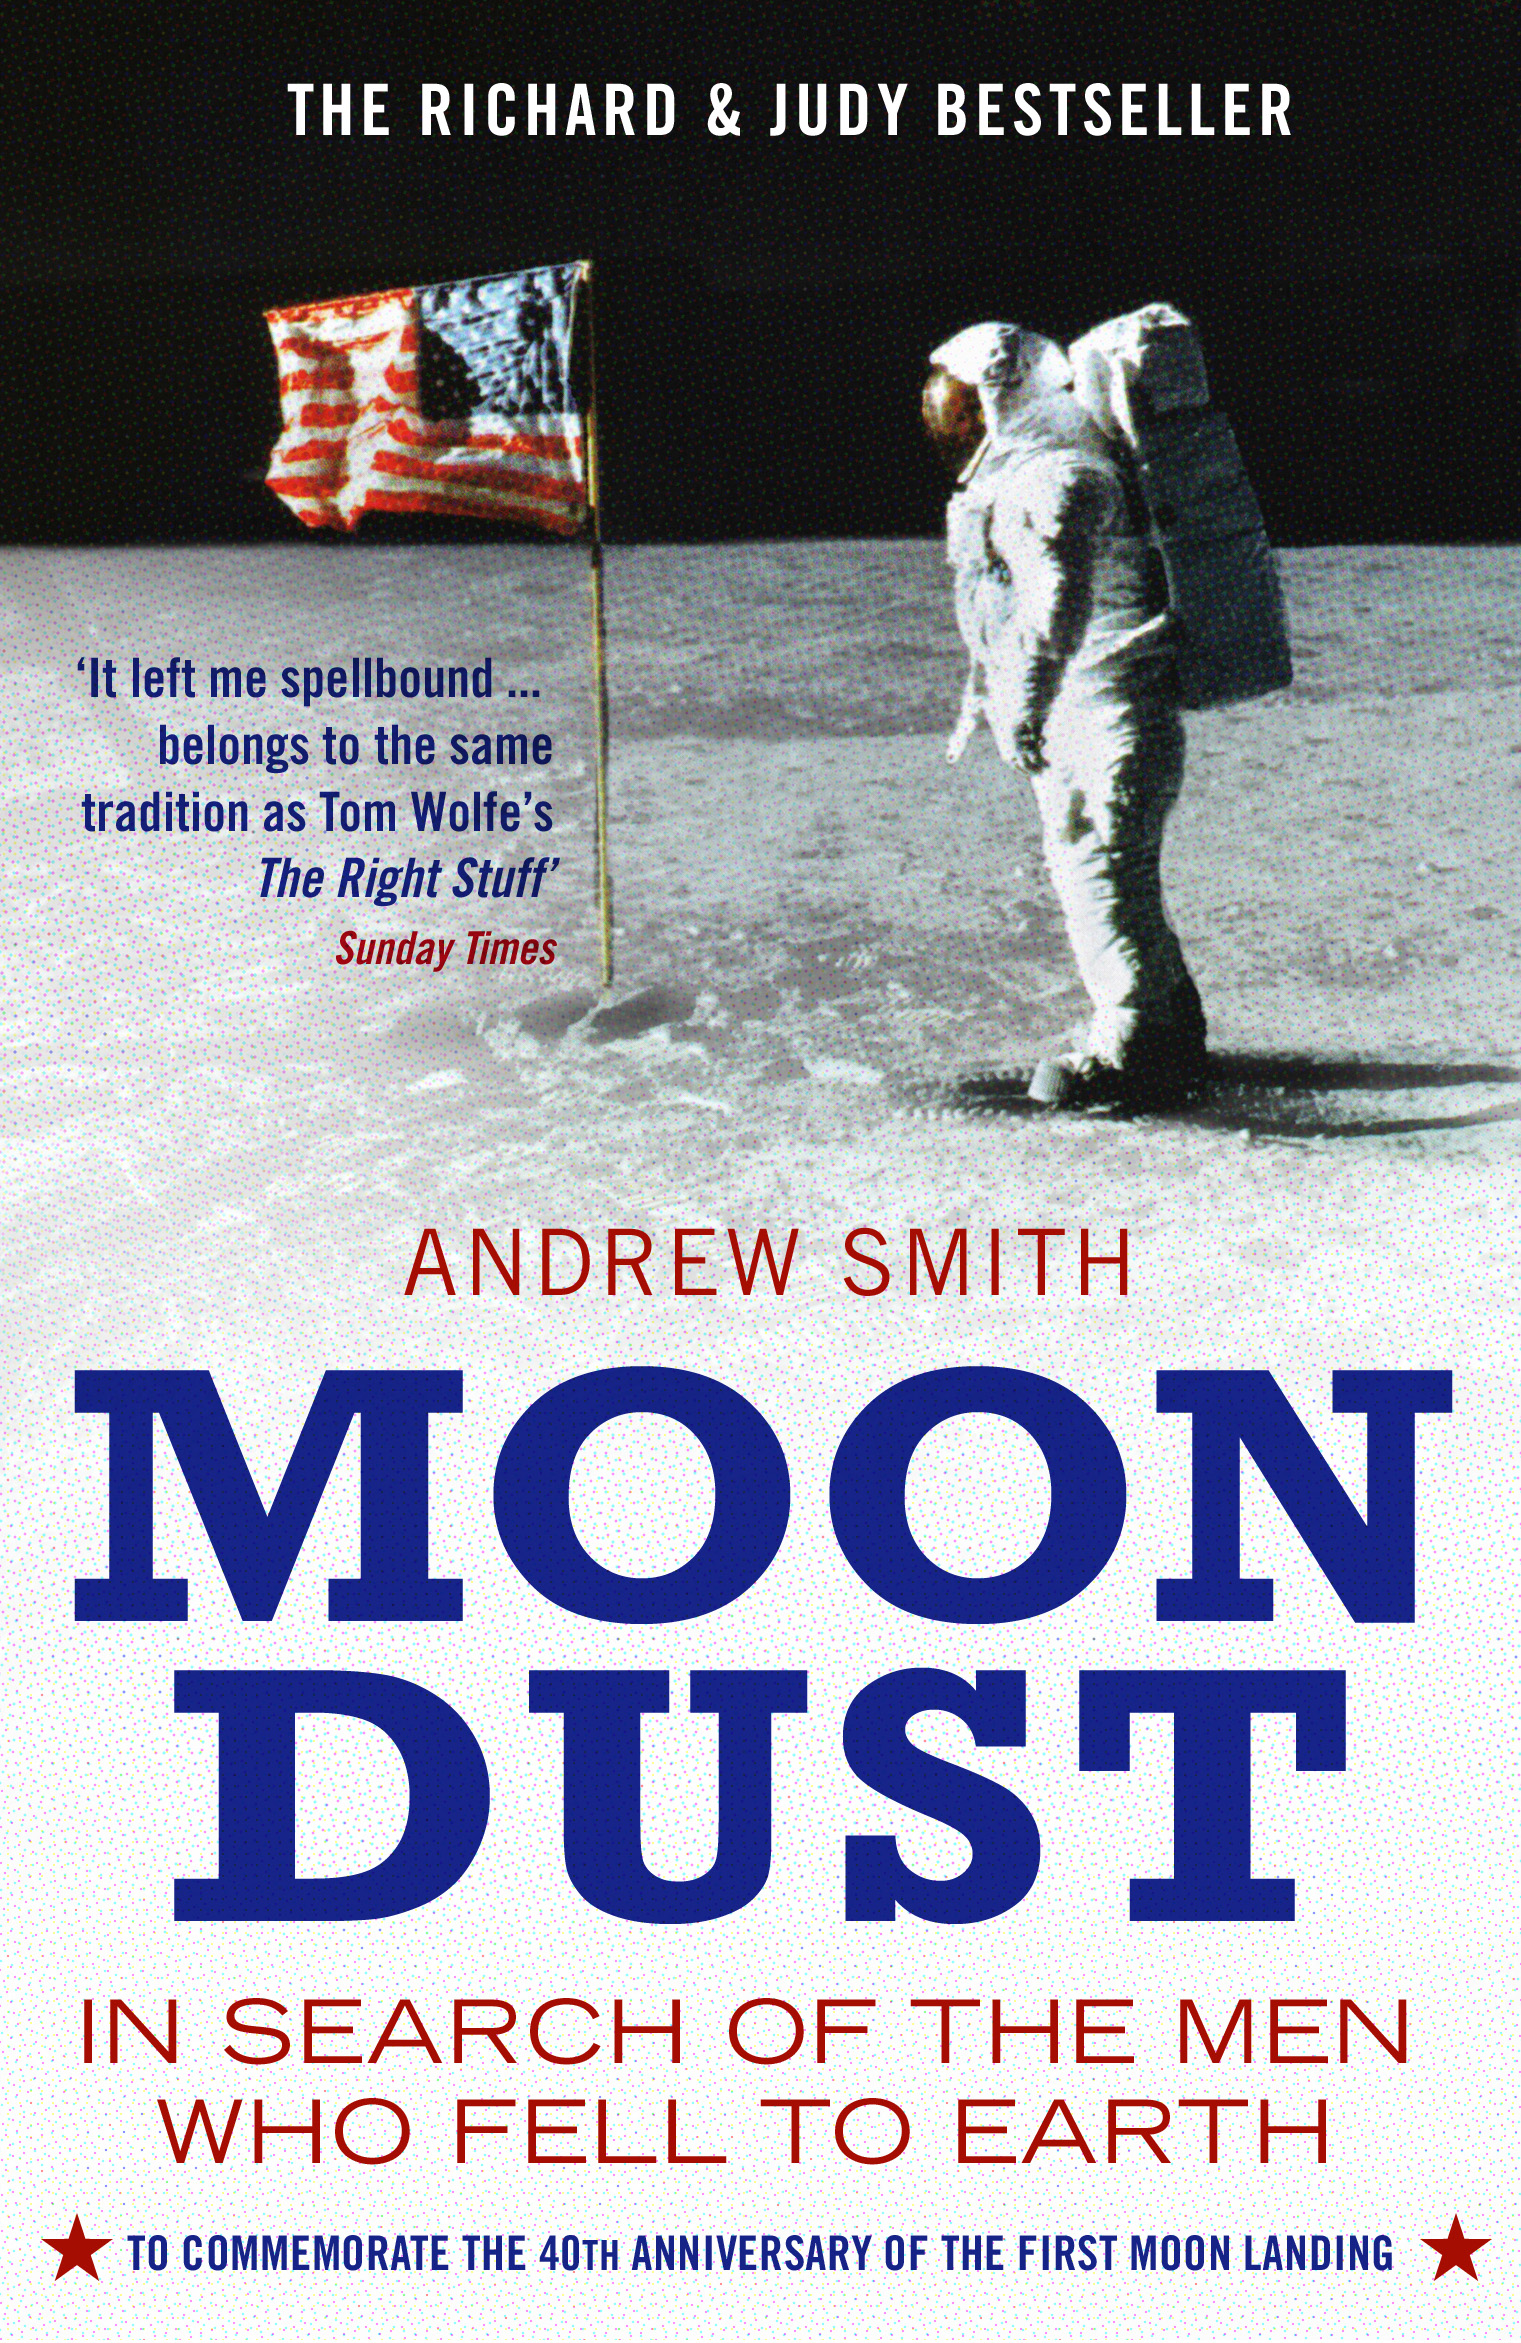 Moondust: In Search of the Men who Fell to Earth In Search of the Men who Fell to Earth